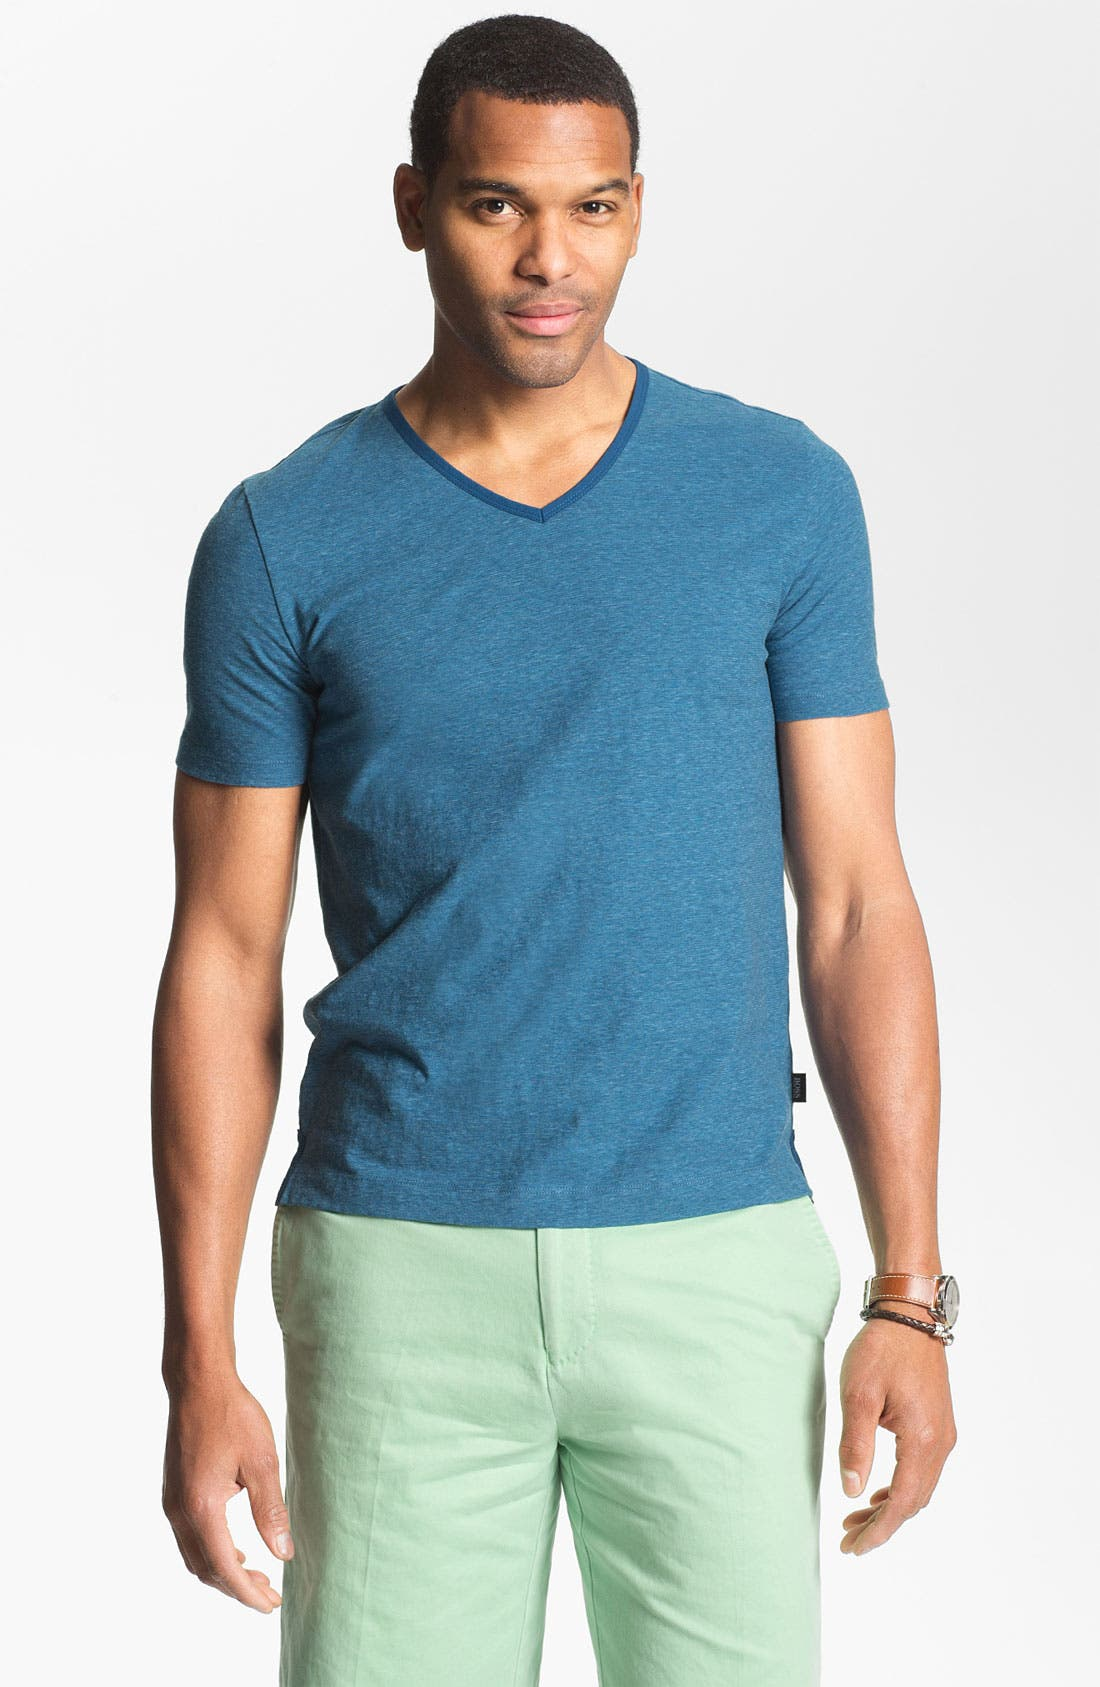 Alternate Image 1 Selected - BOSS HUGO BOSS 'Eraldo 53' V-Neck T-Shirt